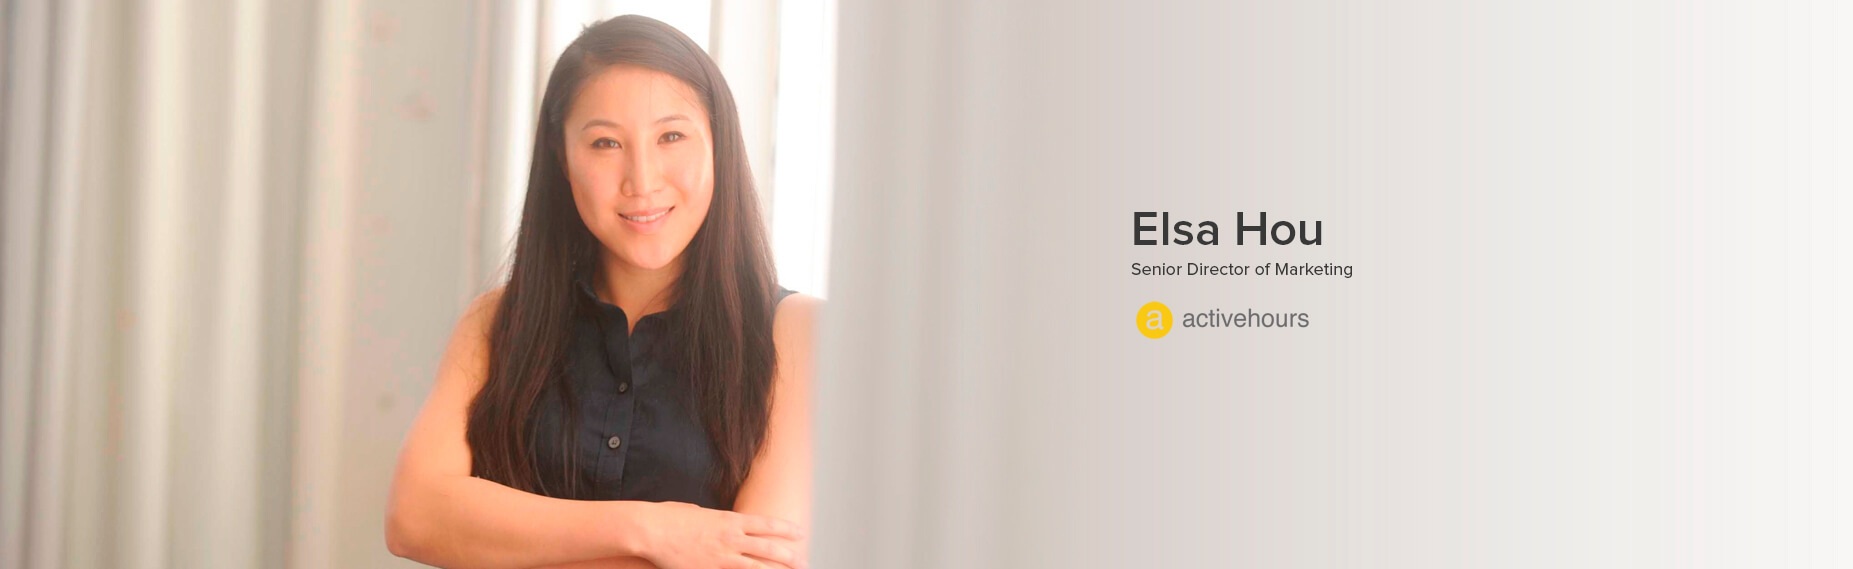 Elsa Hou, Senior Director of Marketing at Activehours